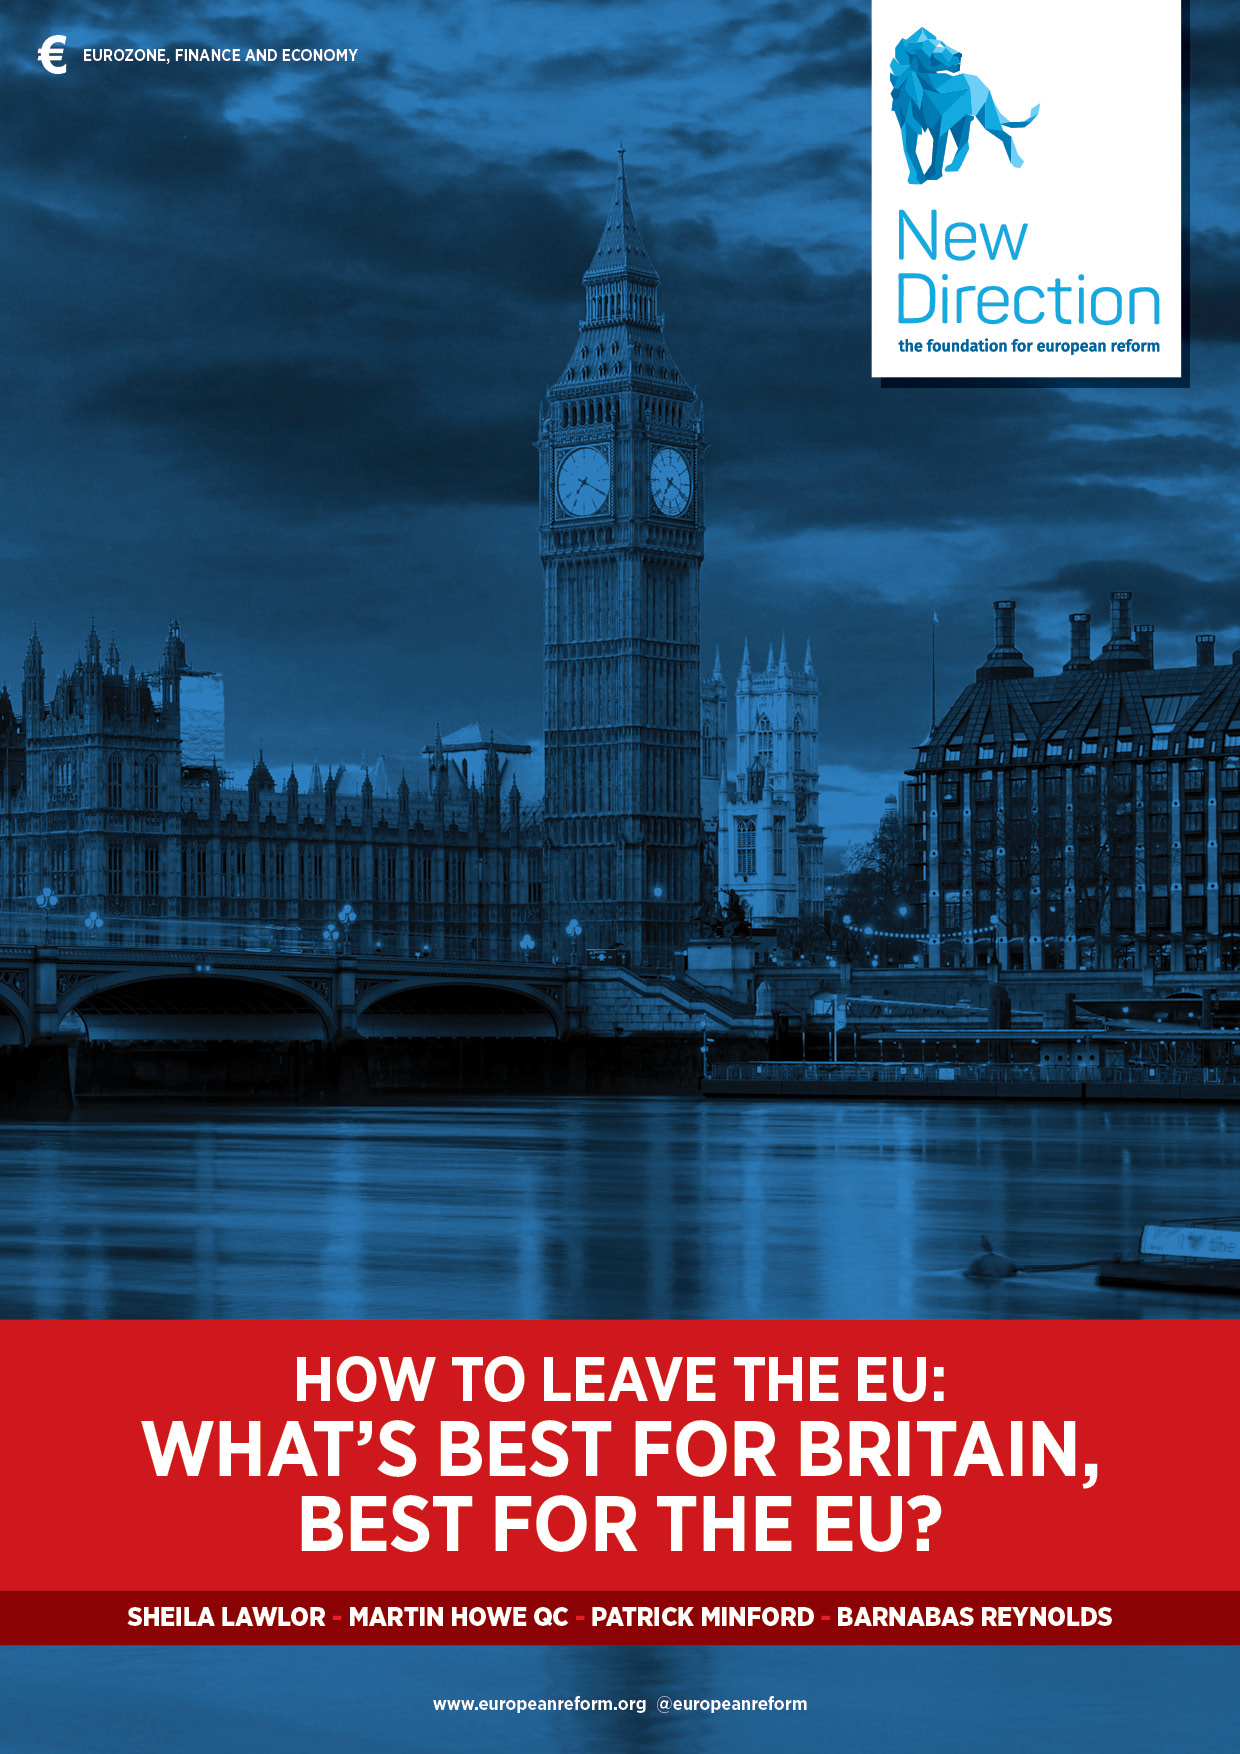 How to Leave the EU: What's Best for Britain, Best for the EU?